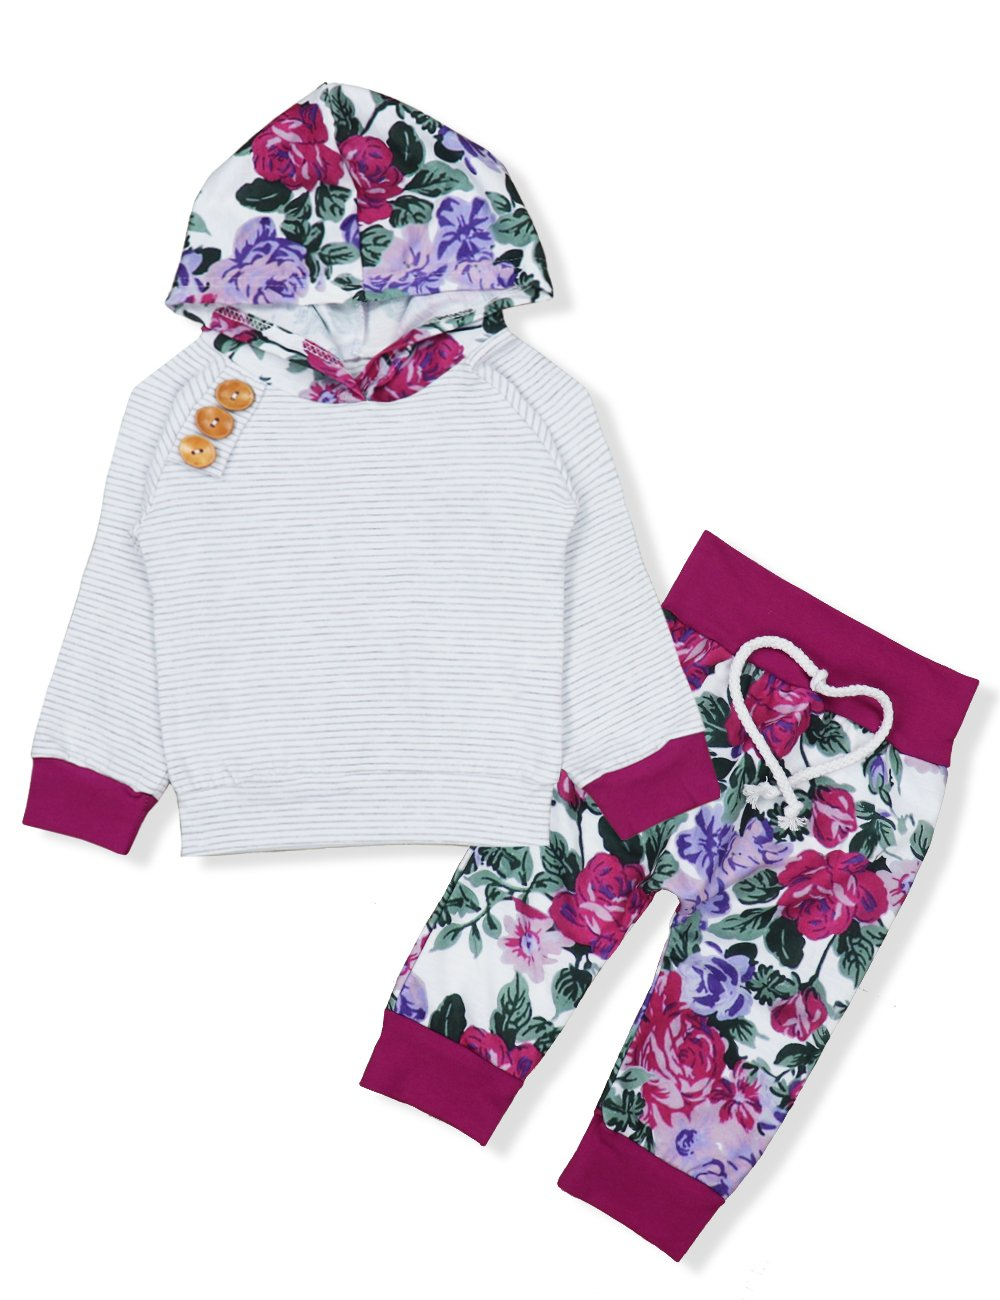 Baby Girls Long Sleeve Flowers Hoodie Tops and Pants Outfit with Kangaroo Pocket Headband (0-6 Months) by Oklady (Image #1)